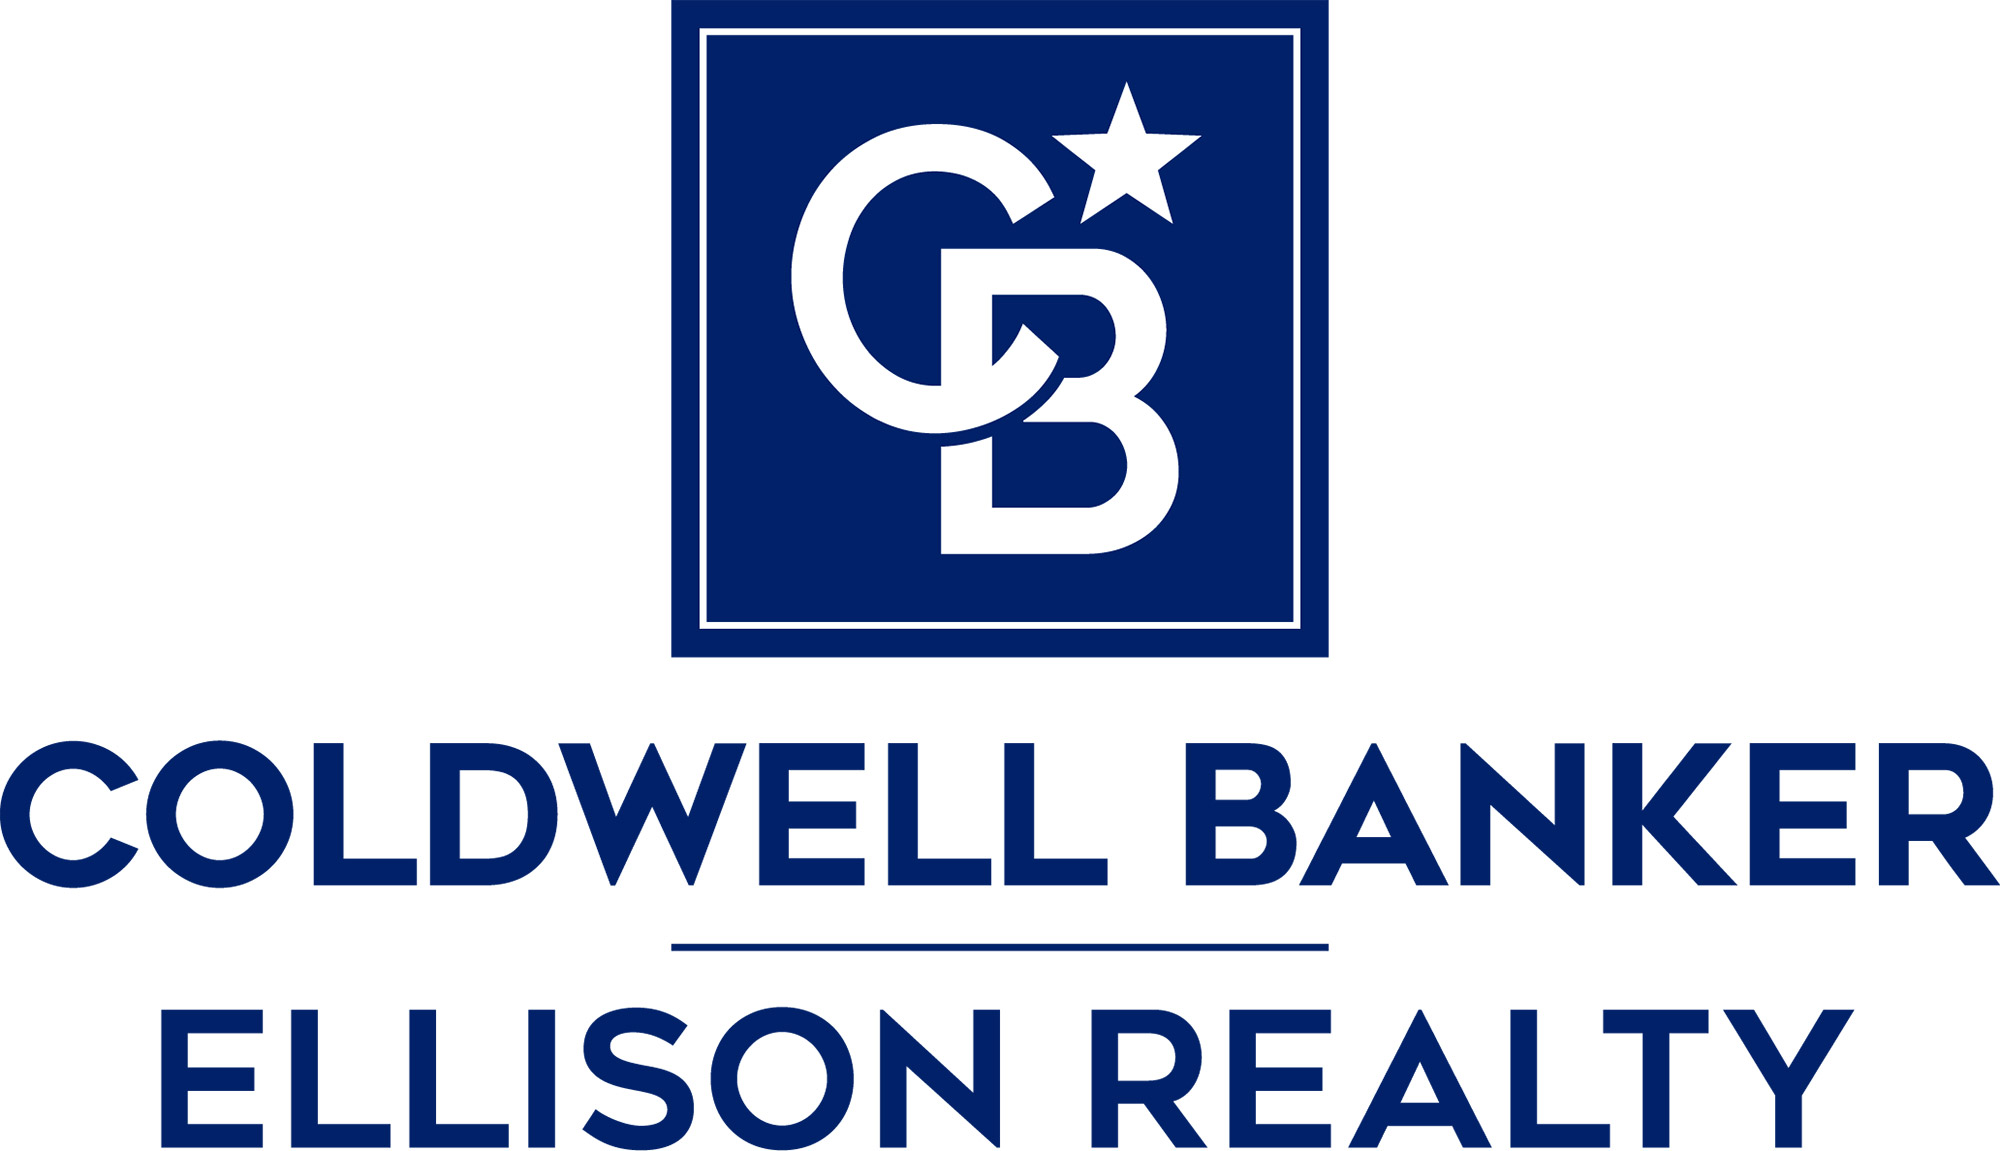 Christopher O'Neil - Coldwell Banker Ellison Realty